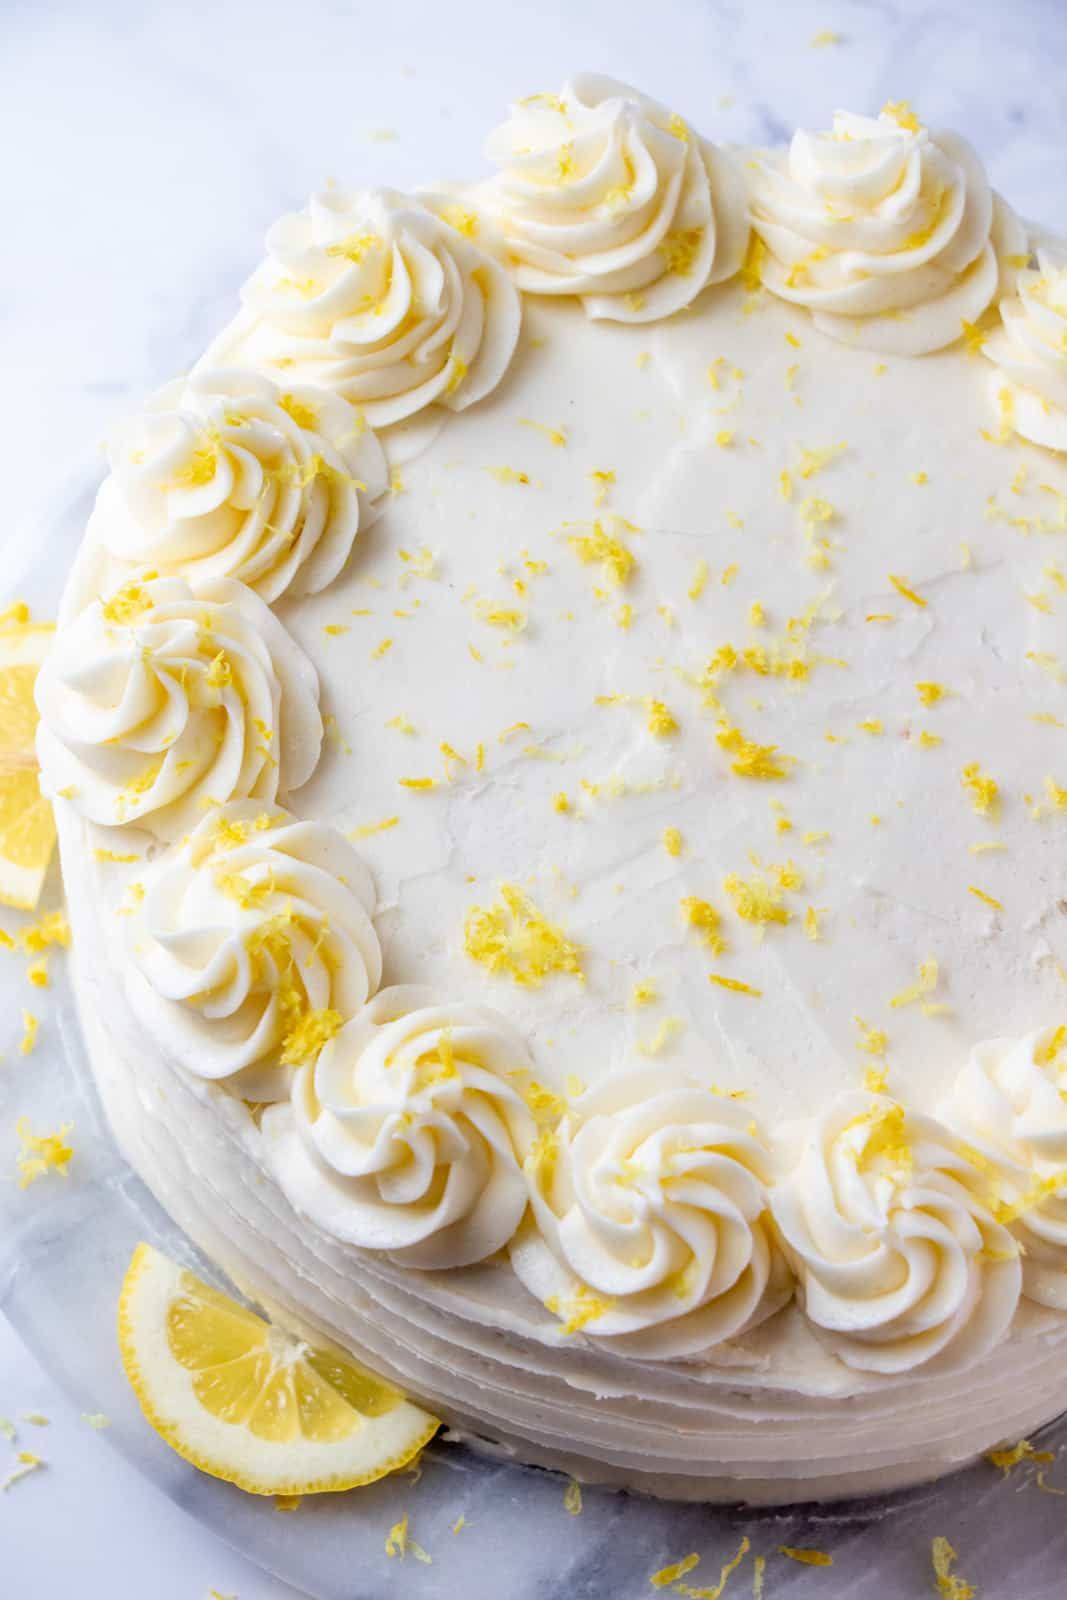 Overhead photo showing top of cake with piped swirls and lemon zest decorations